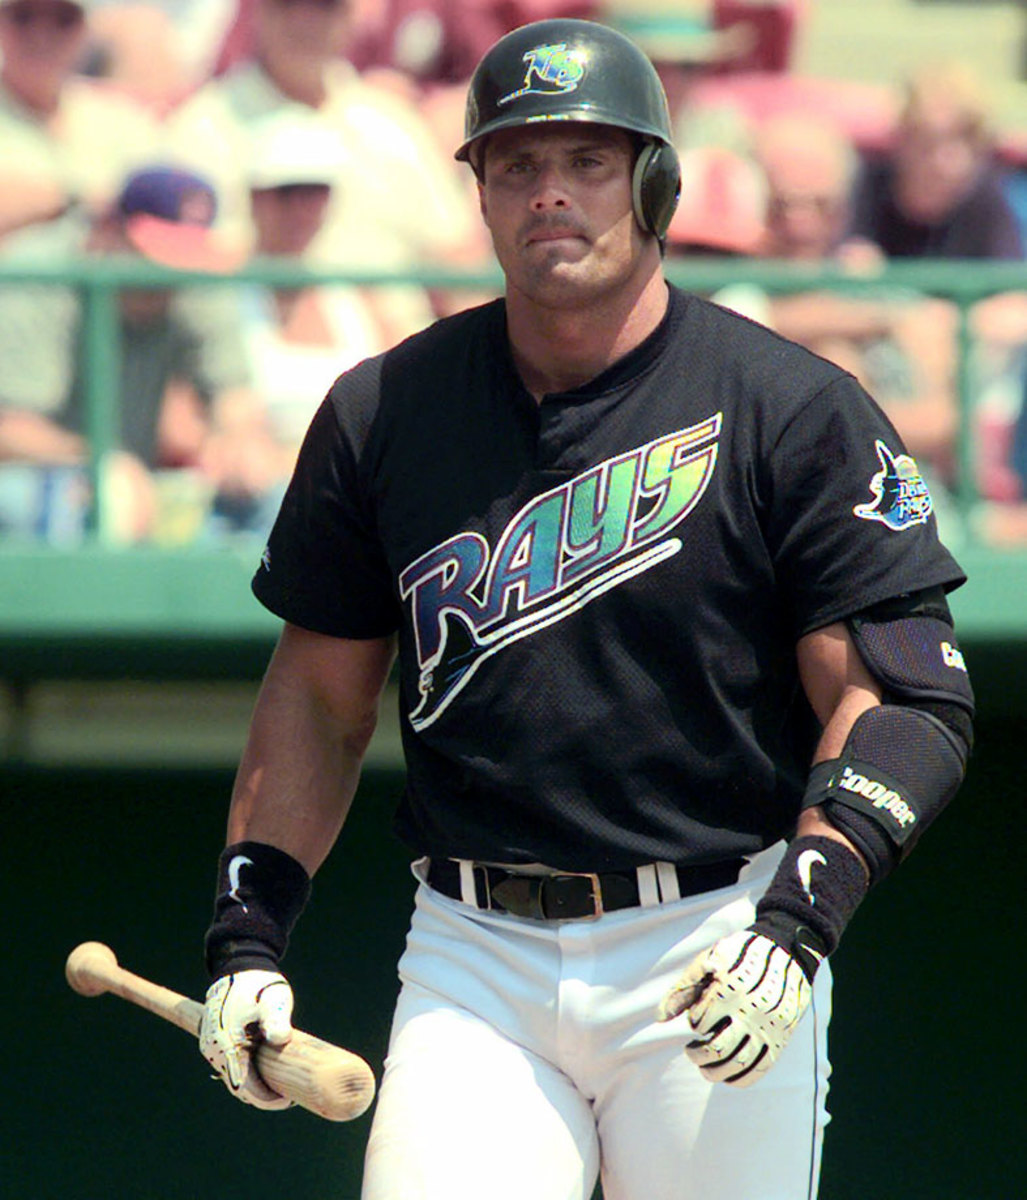 Tampa-Bay-Devil-Rays-uniform-1999-Jose-Canseco.jpg